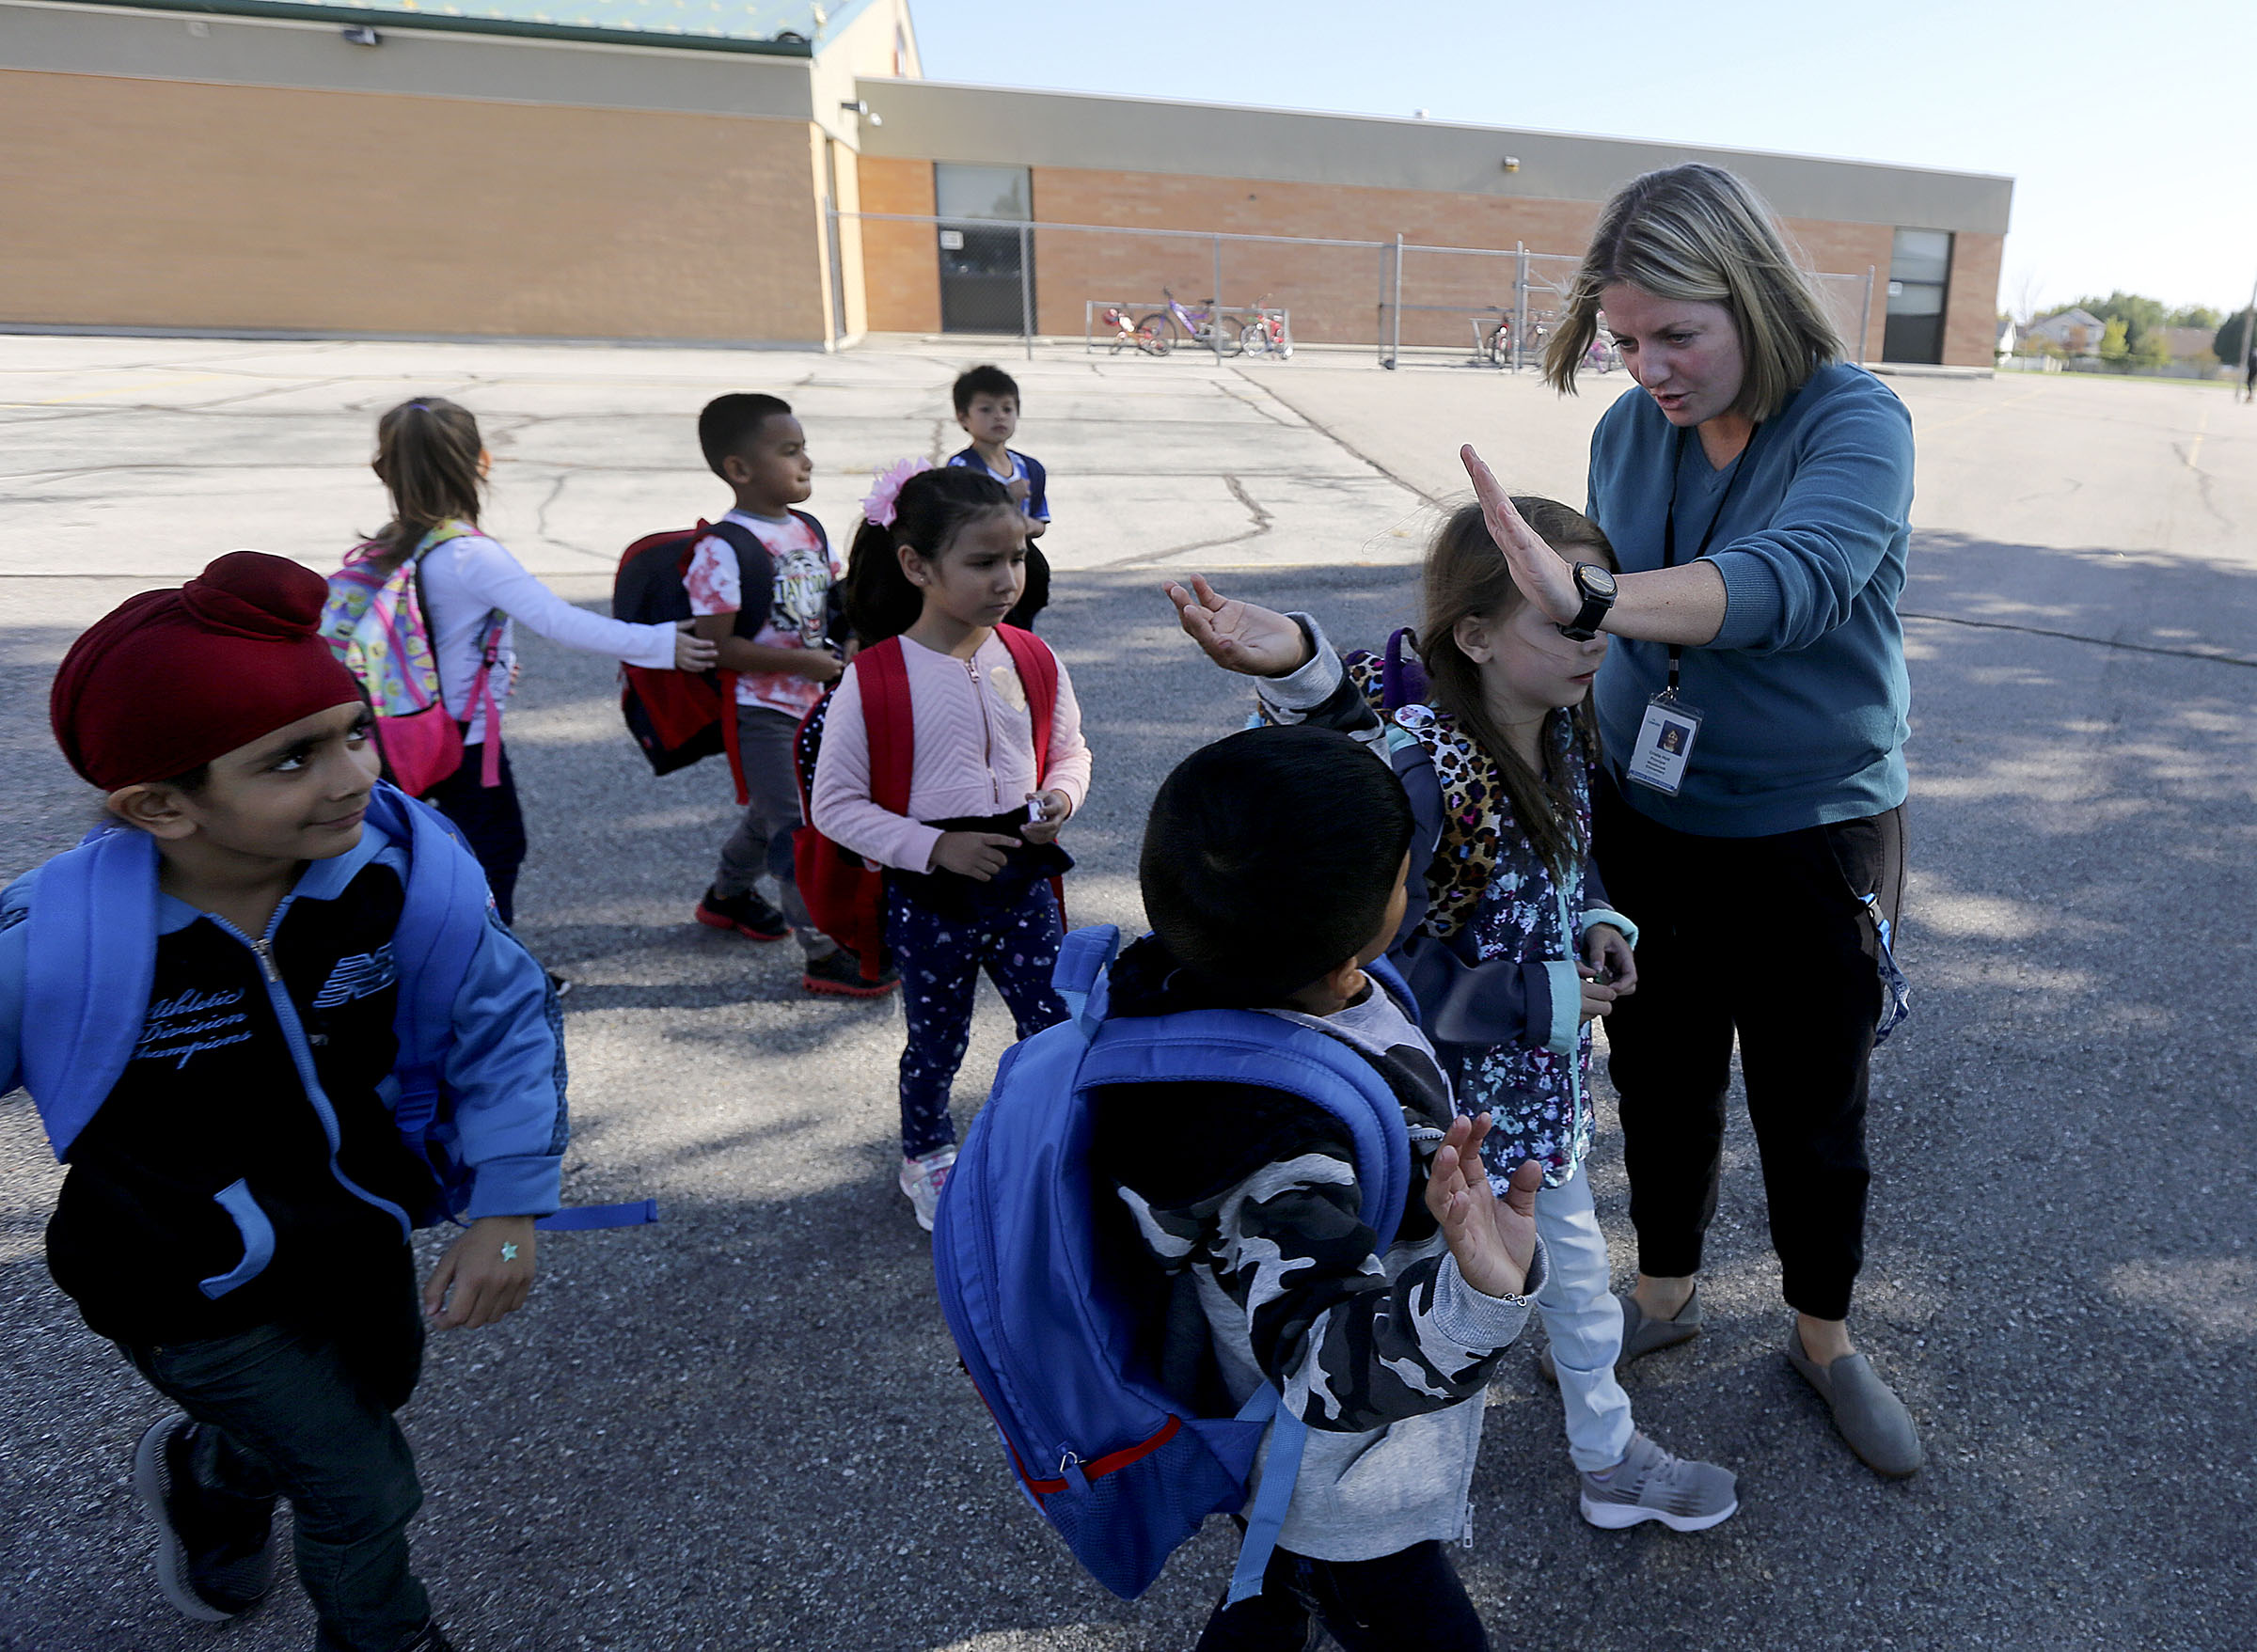 Westbrook Elementary School Principal Crista Holt high-fives students as they leave the Taylorsville school on Monday, Oct. 7, 2019. Granite Board of Education will vote in November on whether or not to close Westbrook as well as Sandberg Elementary School in West Valley City.